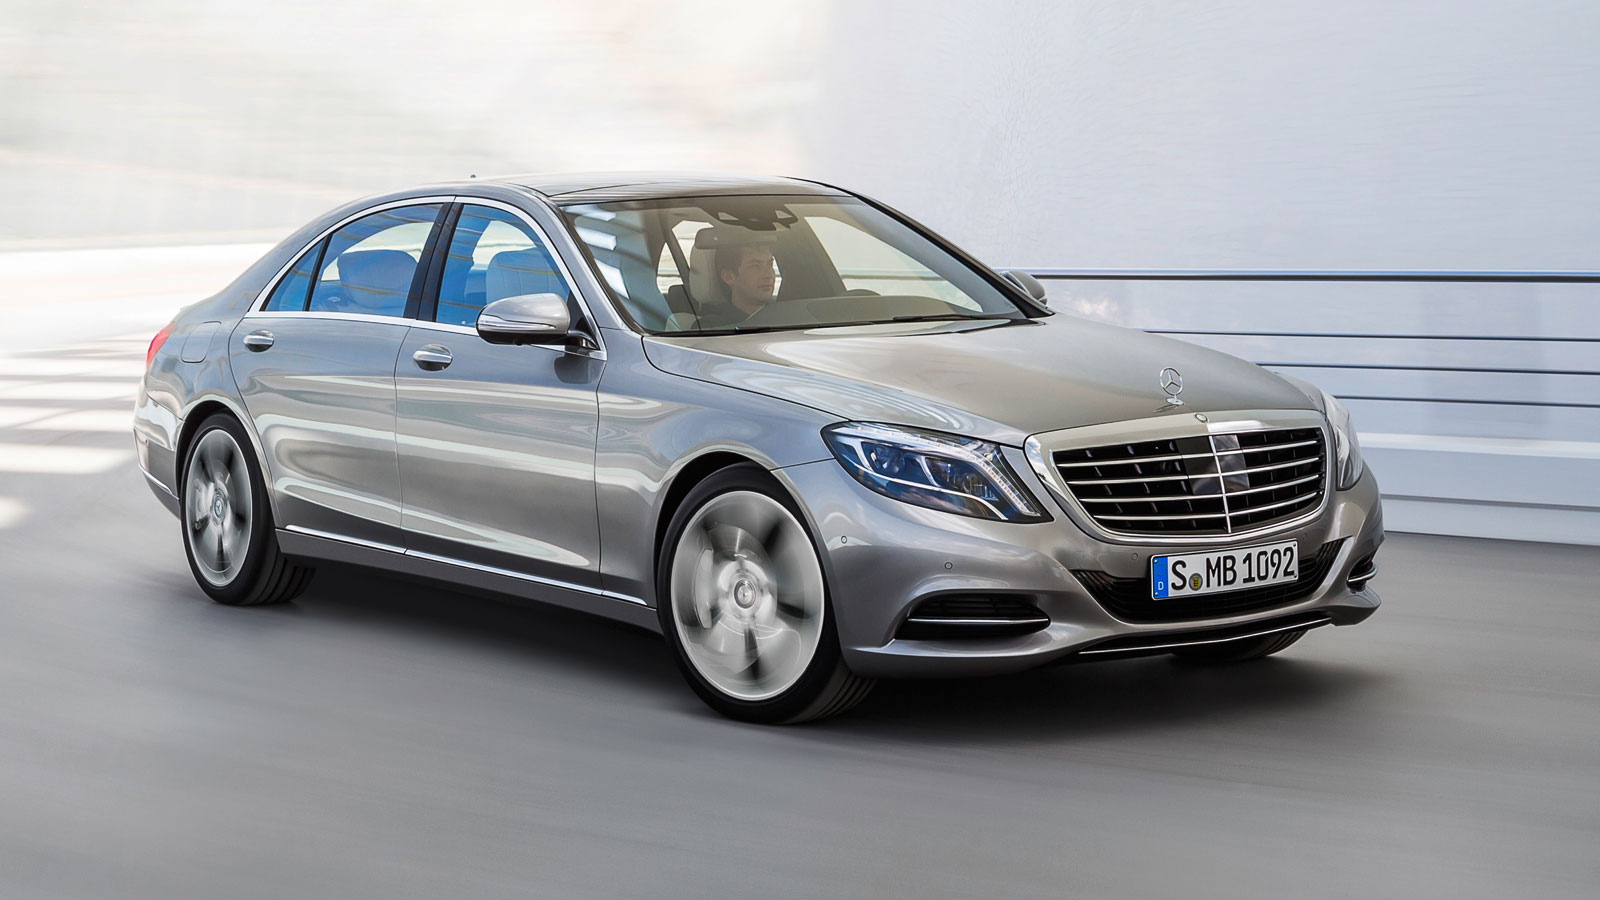 2014 mercedes benz s class car body design for New mercedes benz s class 2014